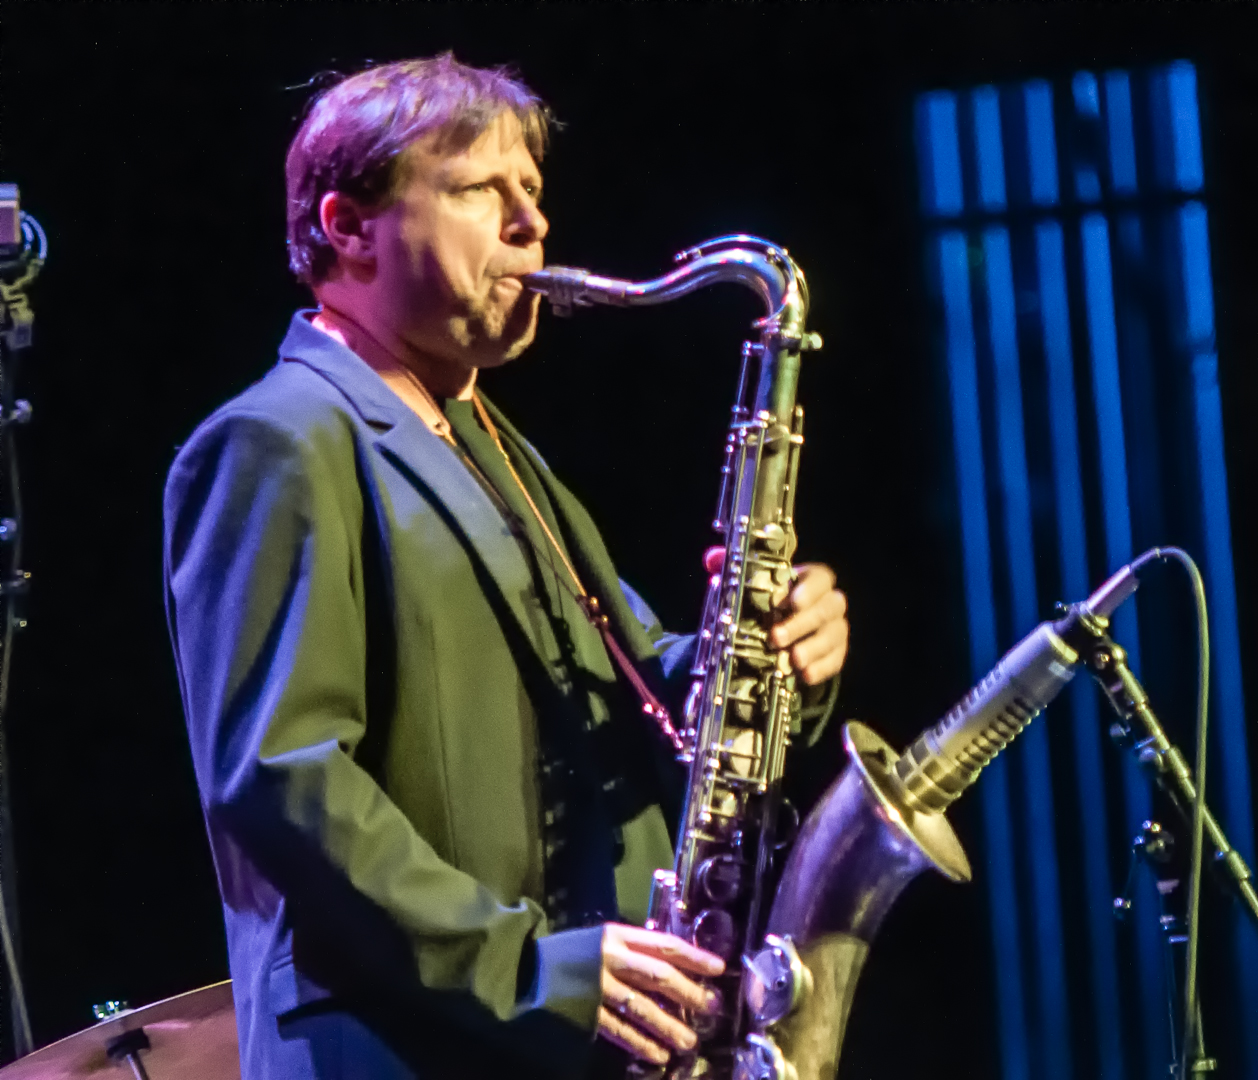 Chris potter with the monterey jazz festival on tour at mesa arts center